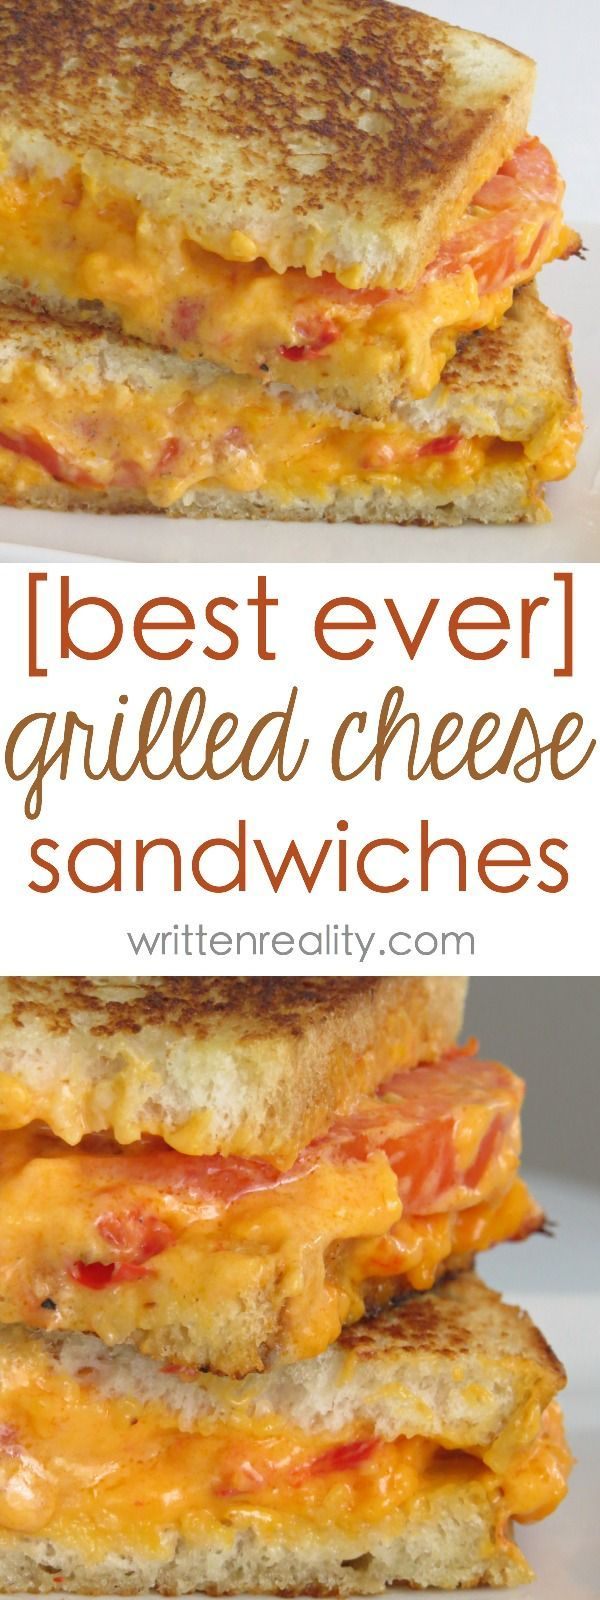 Best Grilled Cheese Sandwich Recipe : Want to learn how to make the most delicious grilled cheese sandwich? Here's the secret to a perfectly grilled cheese sandwich with a filling of the most delicious gooey melted cheese. It's a super easy recipe everyone will love.